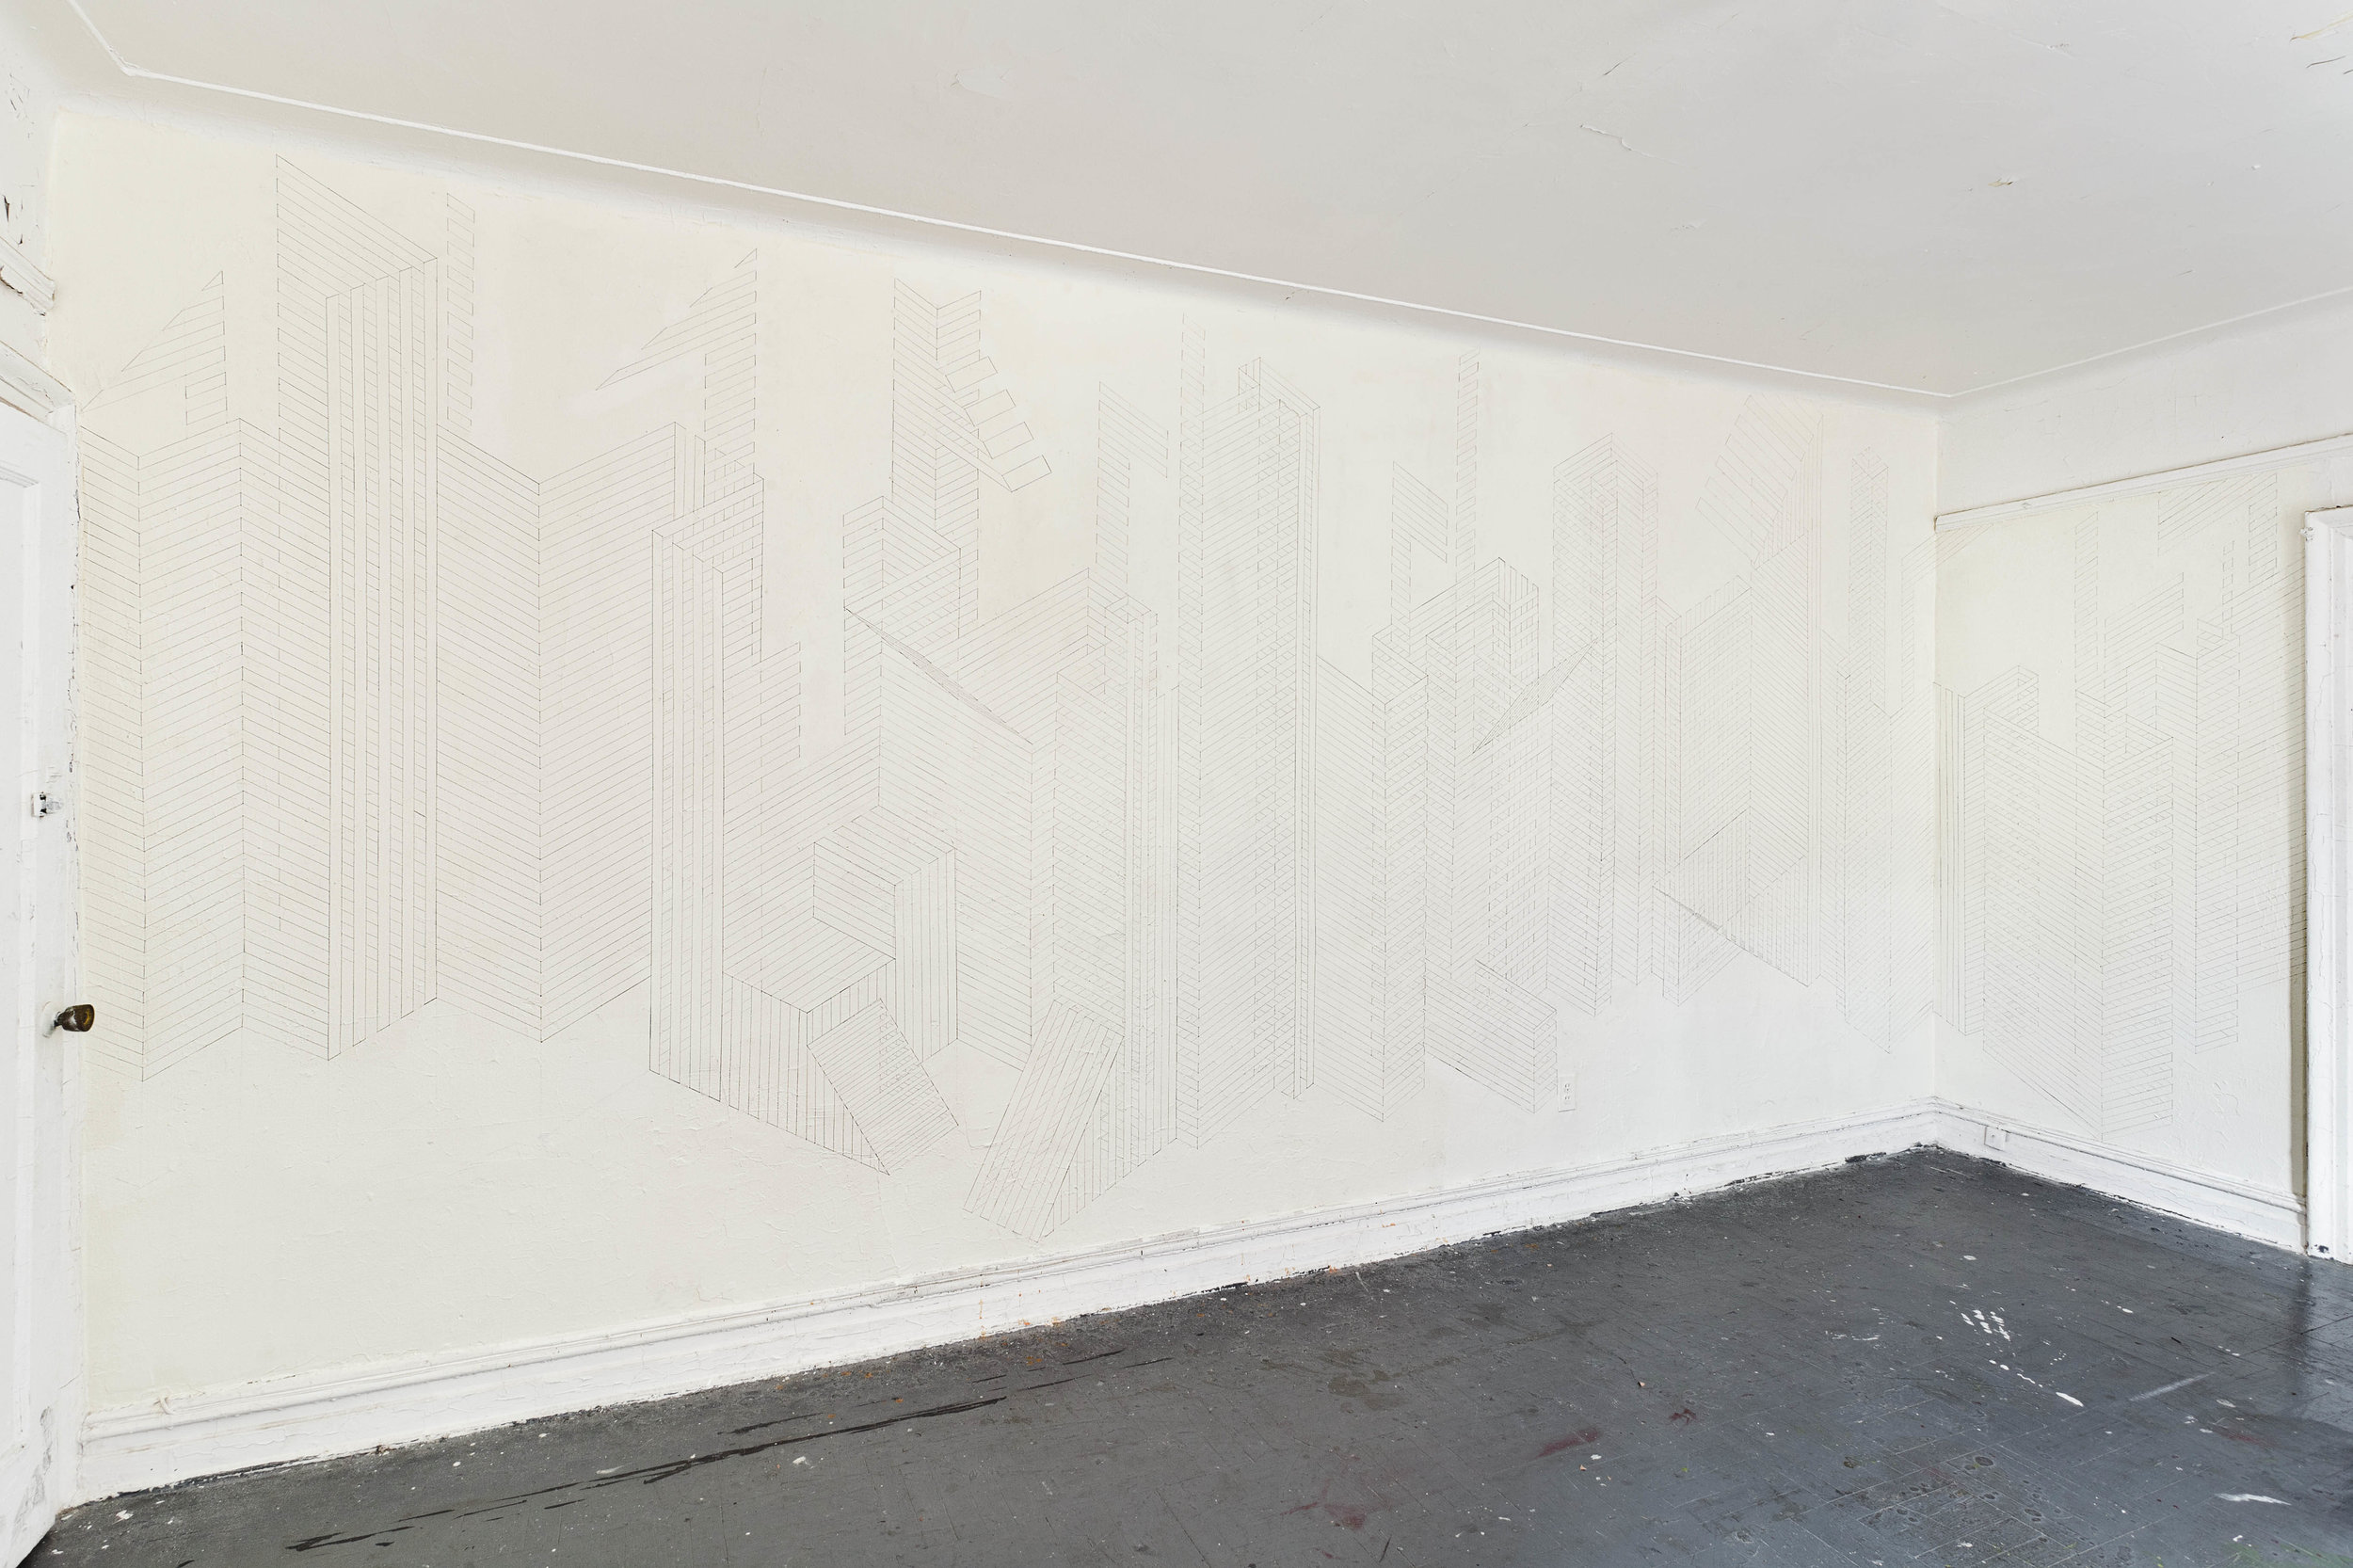 Construction Wall Drawing 2, 2012  graphite acrylic on wall  8 x 18 ft (large wall), 4.5 x 6 ft. (short wall)